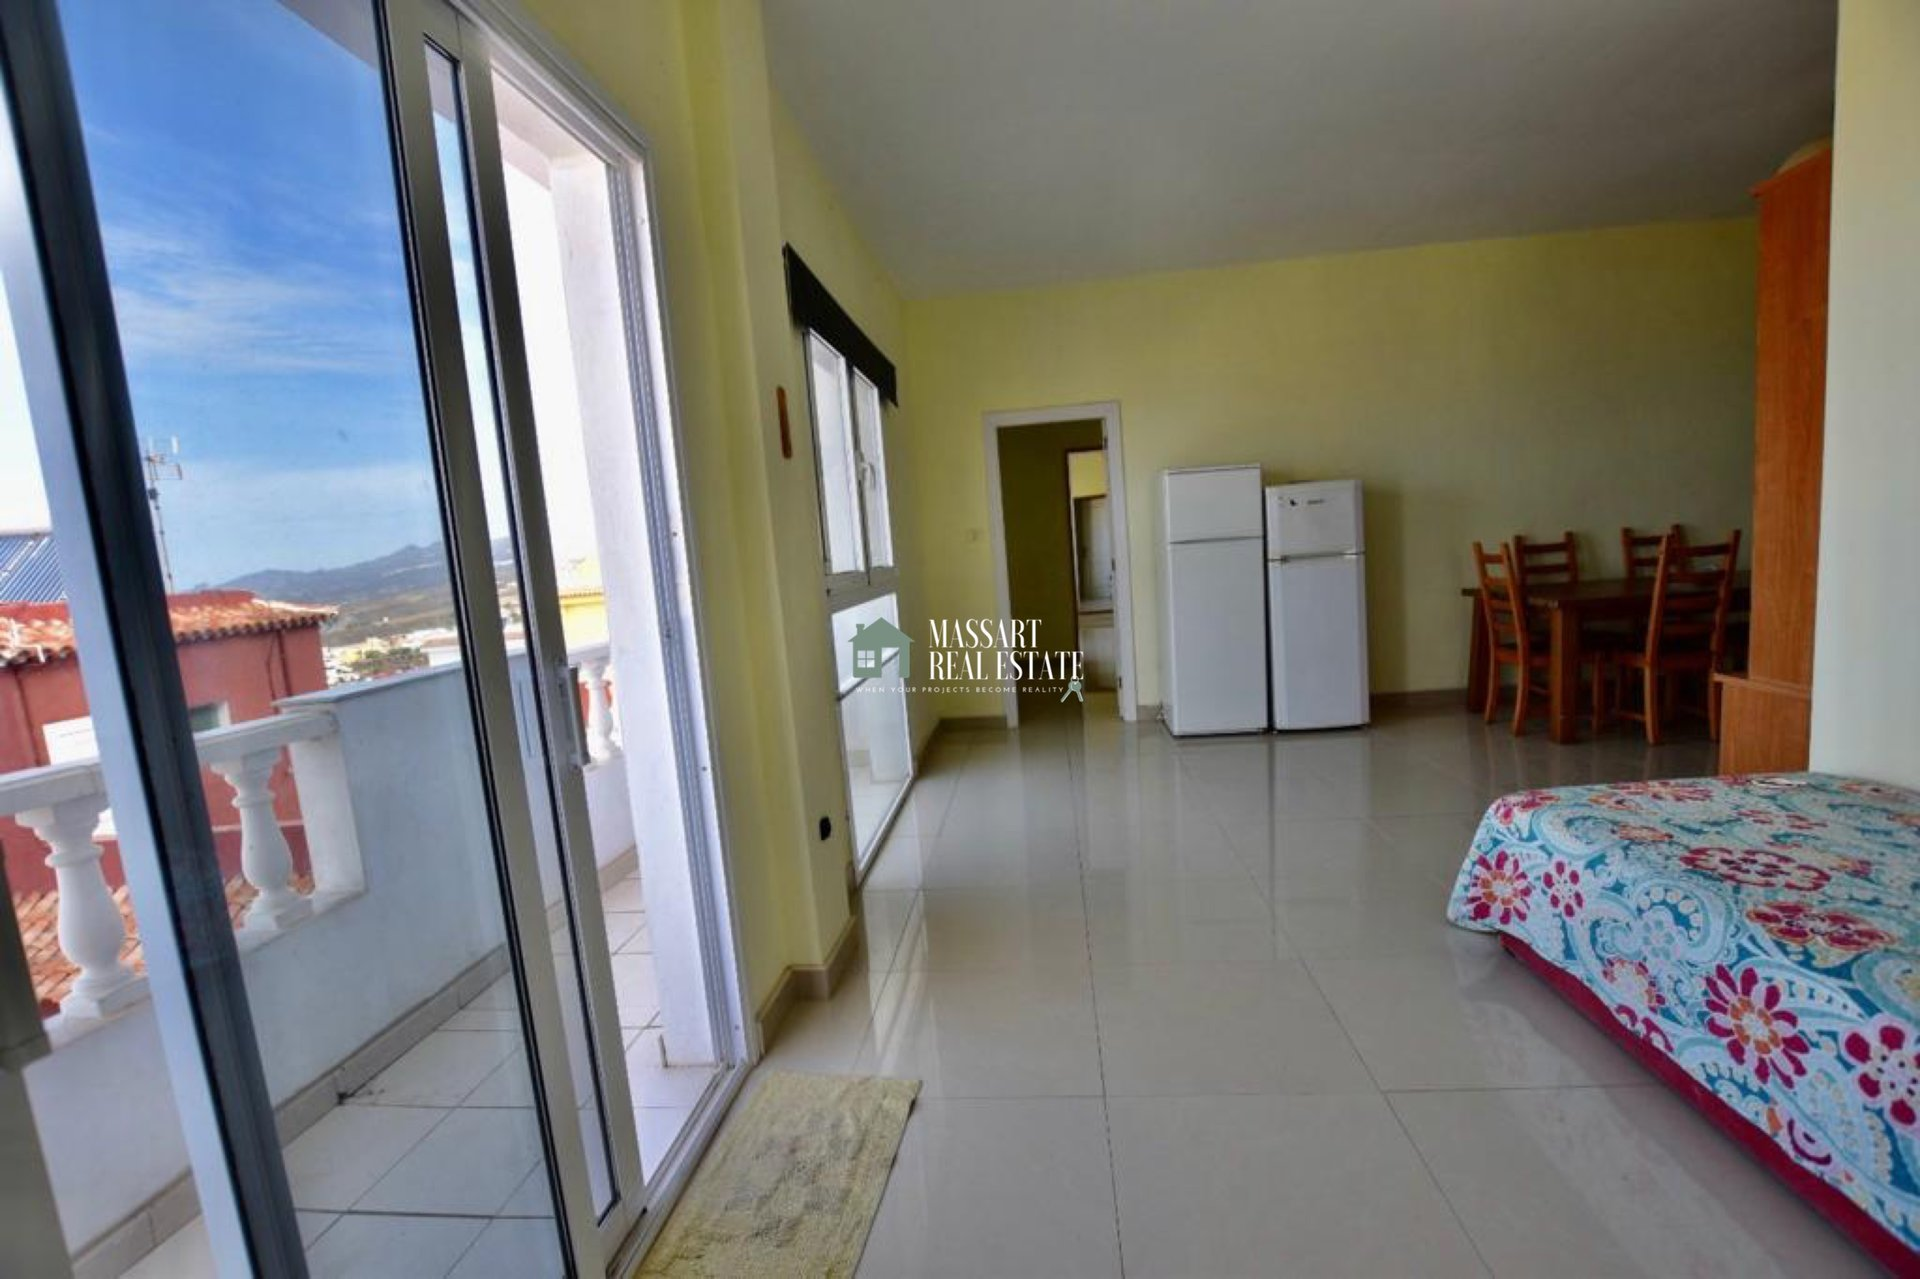 For rent in Tijoco Alto (Adeje), bright apartment characterized by its large size, its good distribution and for offering wonderful views of the sea and the island of La Gomera.